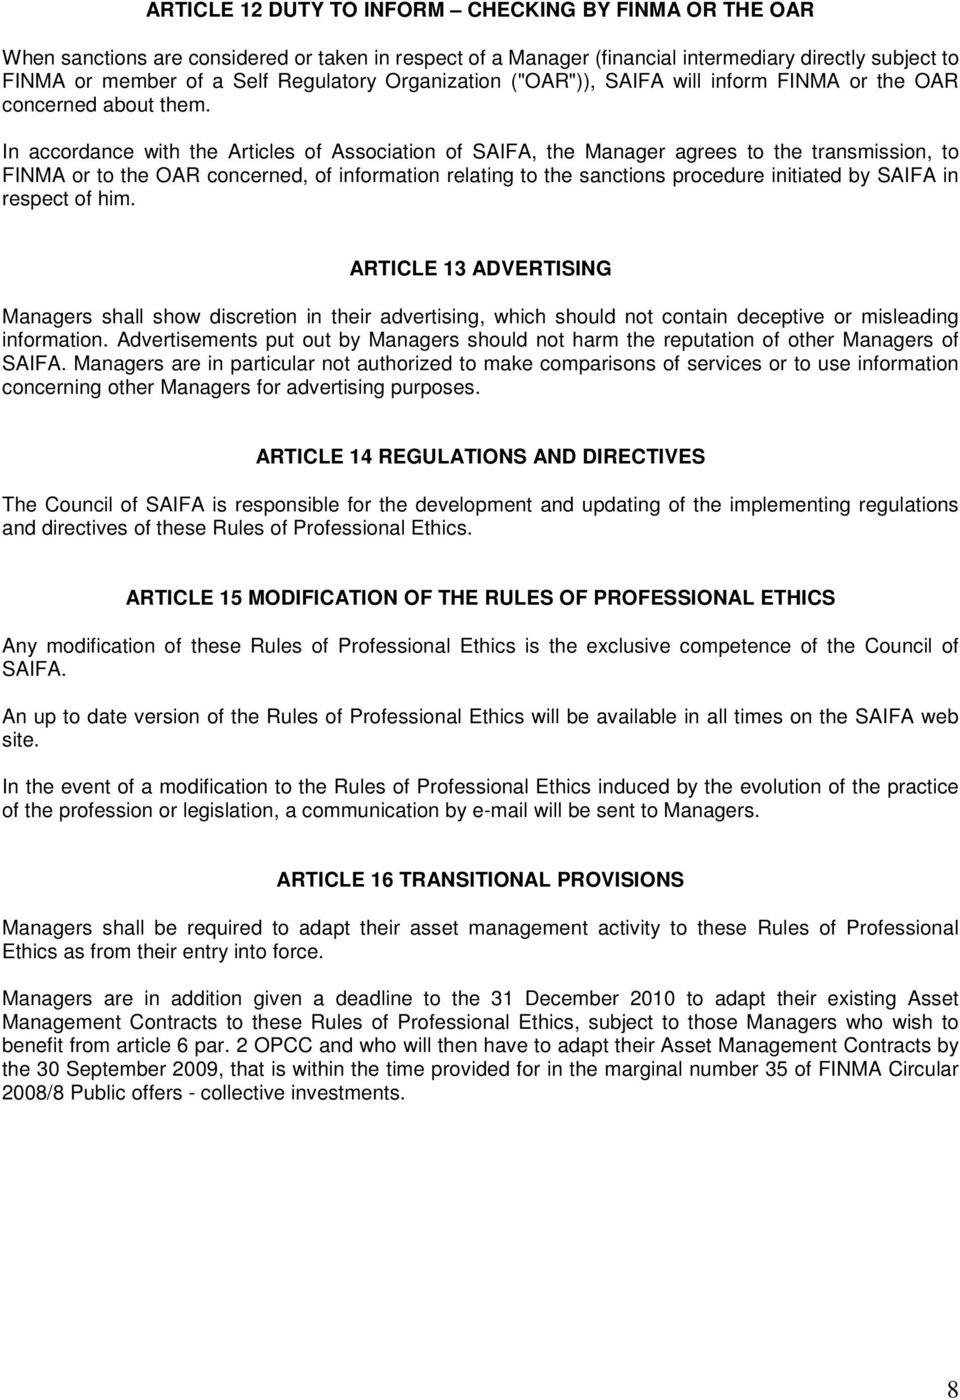 In accordance with the Articles of Association of SAIFA, the Manager agrees to the transmission, to FINMA or to the OAR concerned, of information relating to the sanctions procedure initiated by